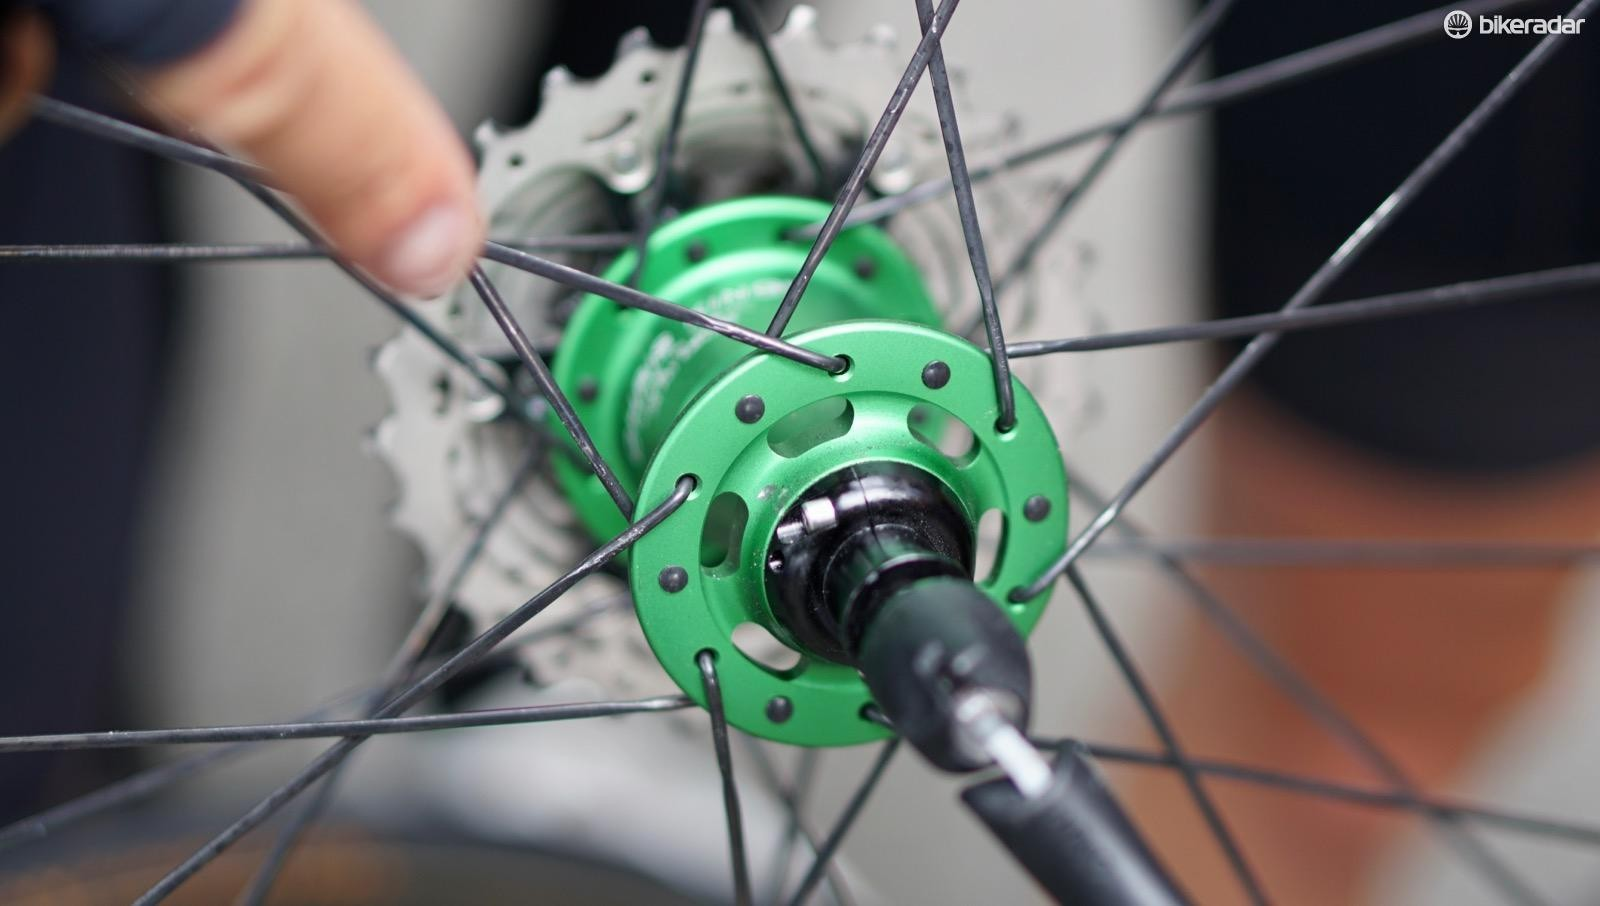 ENVE uses no-contact seals for its pro-race tune, which reduces friction but increases maintenance